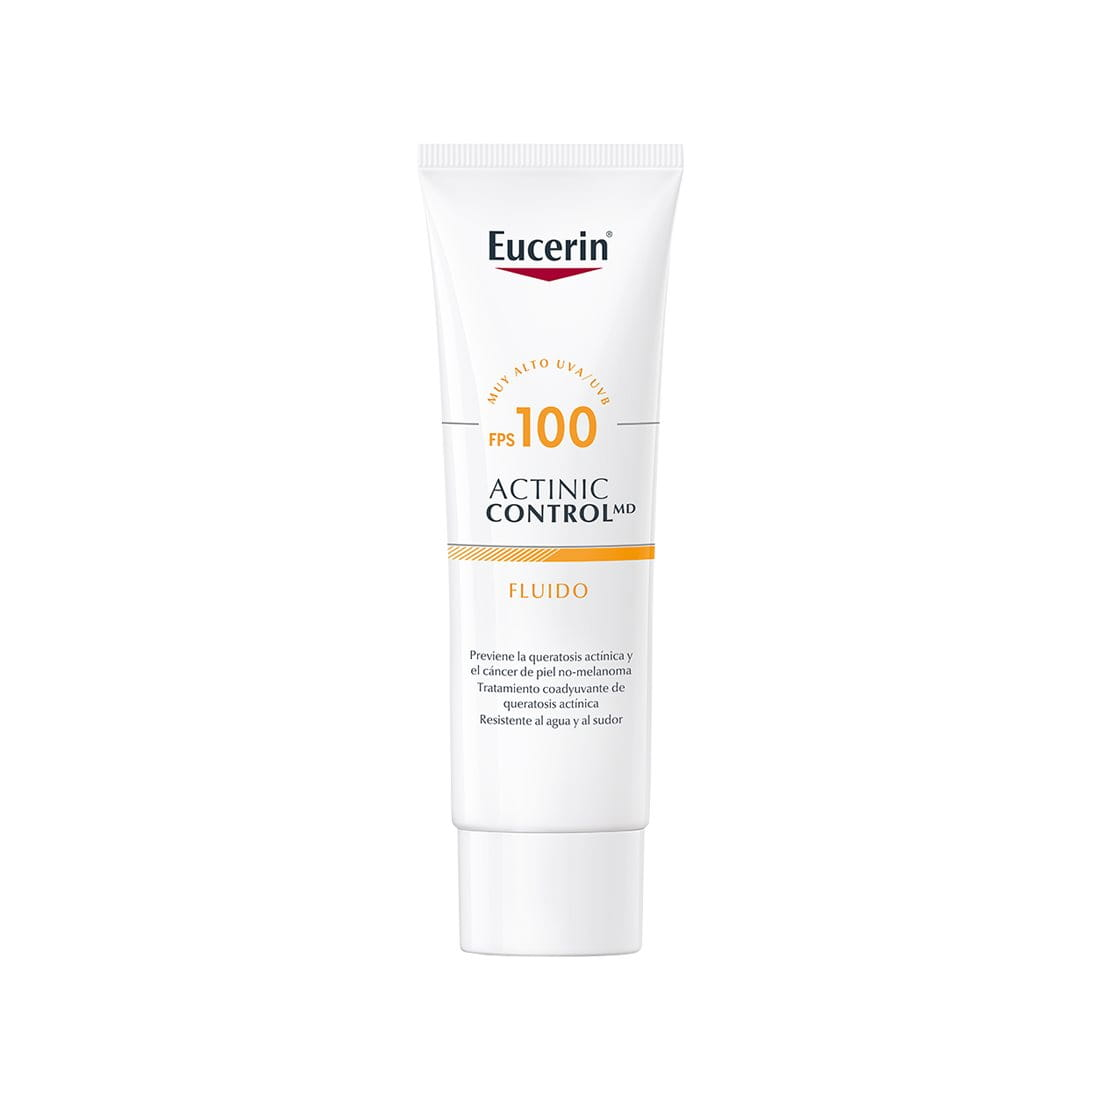 Actinic Control MD FPS 100